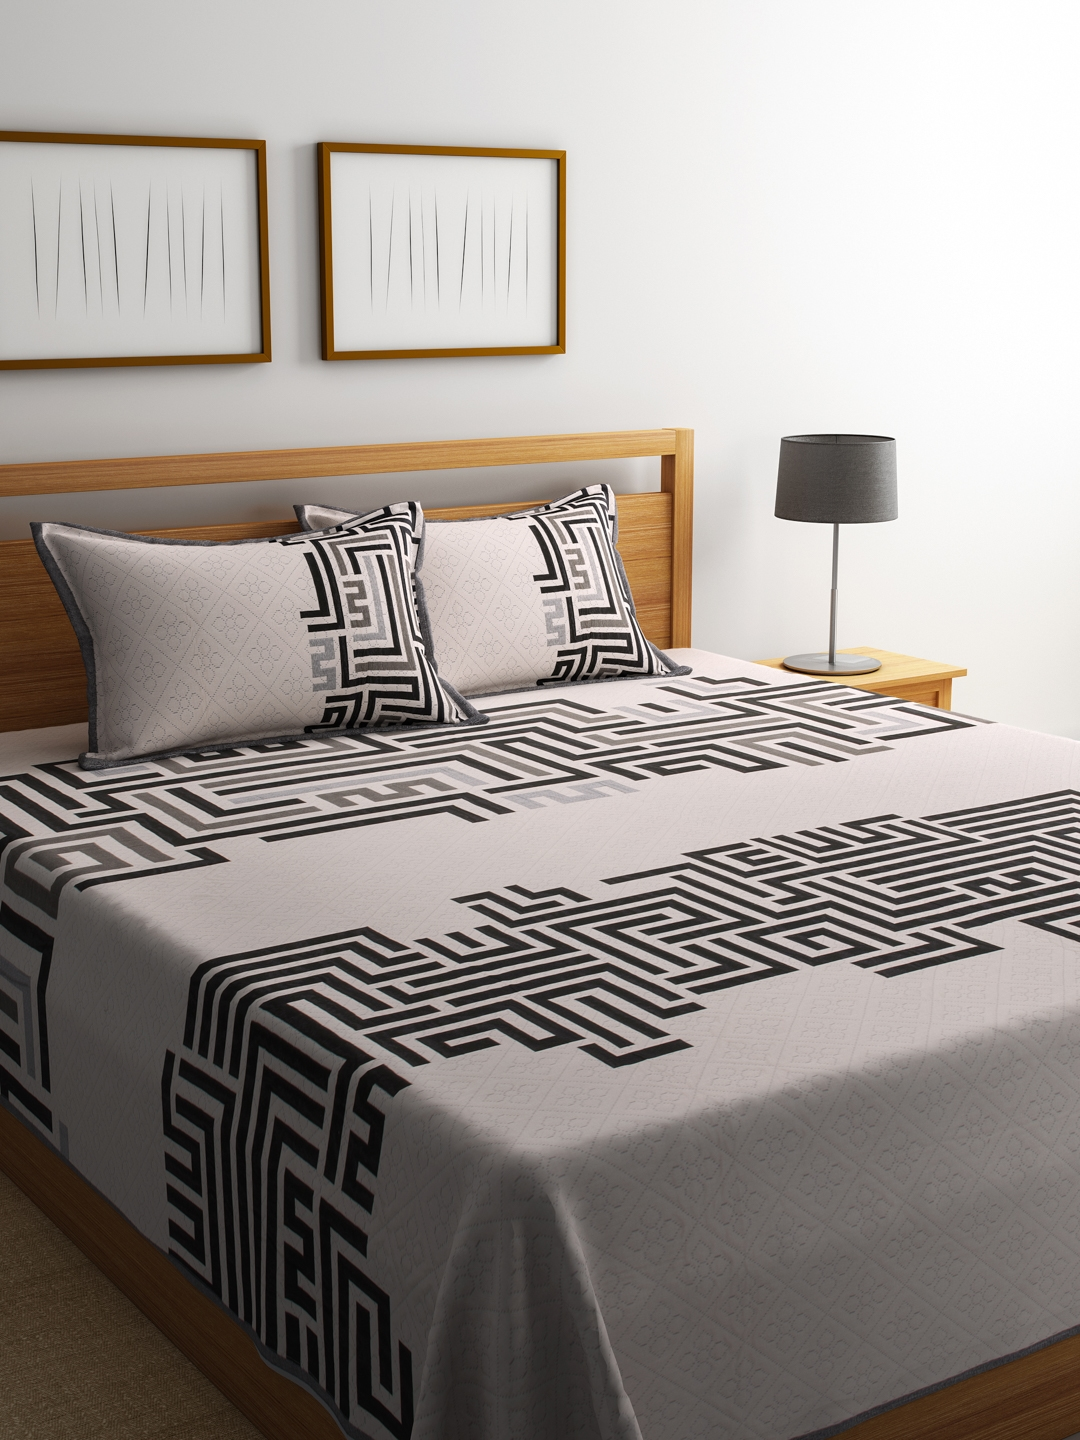 romee black off white polycotton woven design double bed cover with 2 pillow covers